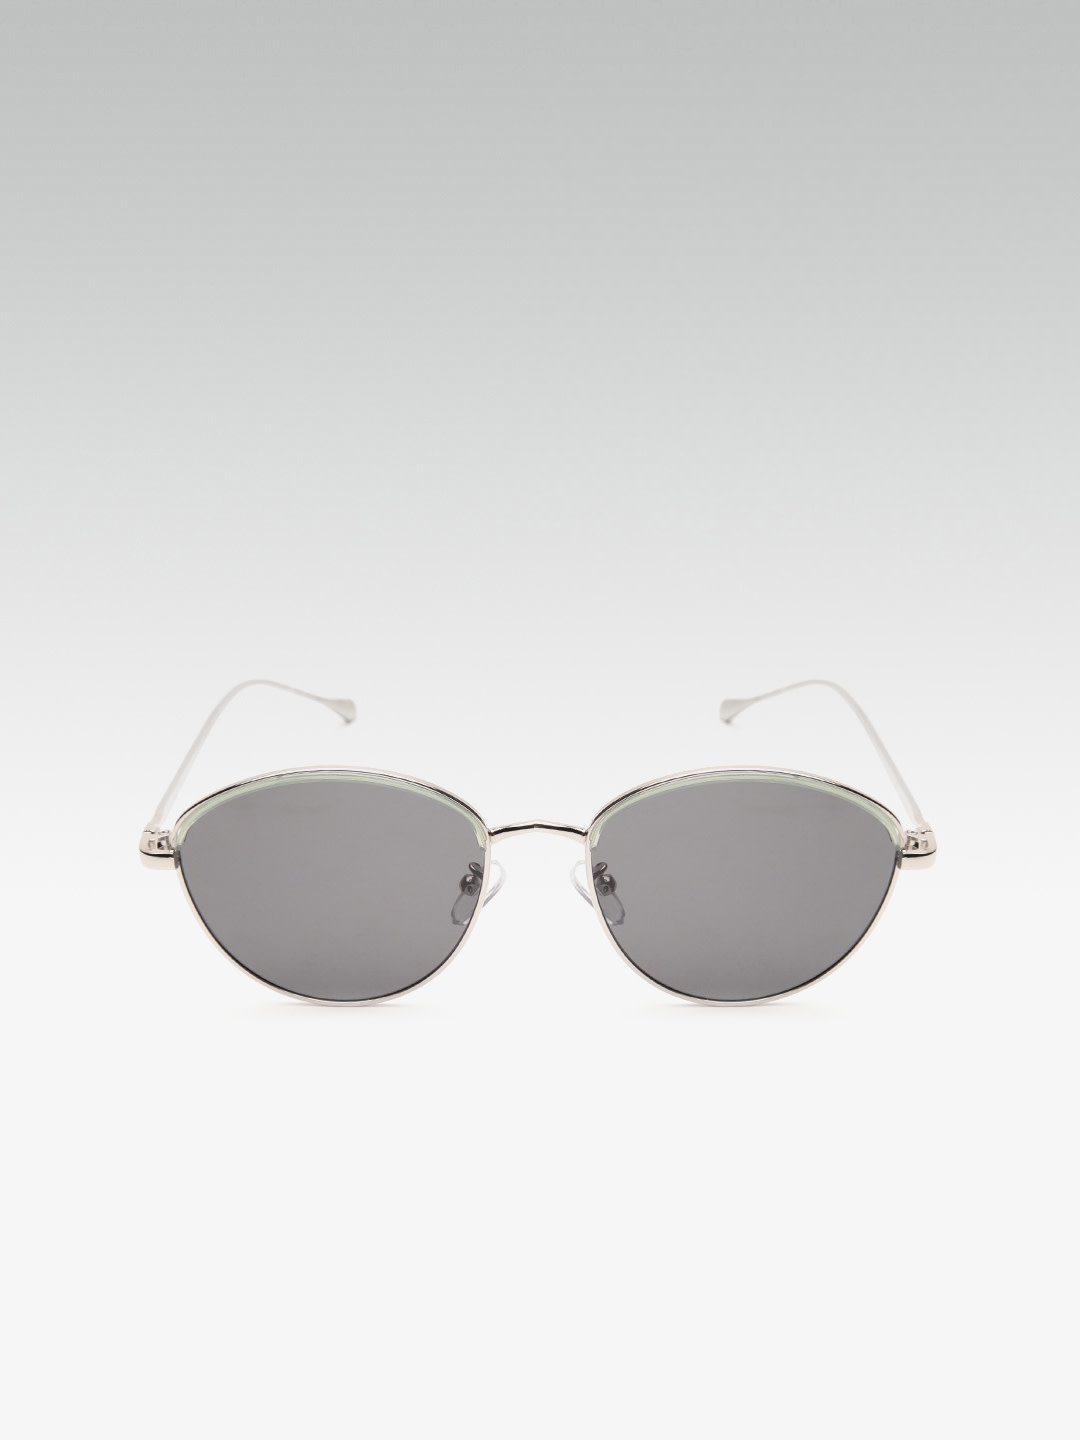 Sunglasses-The Timeless Classic Sunglasses1